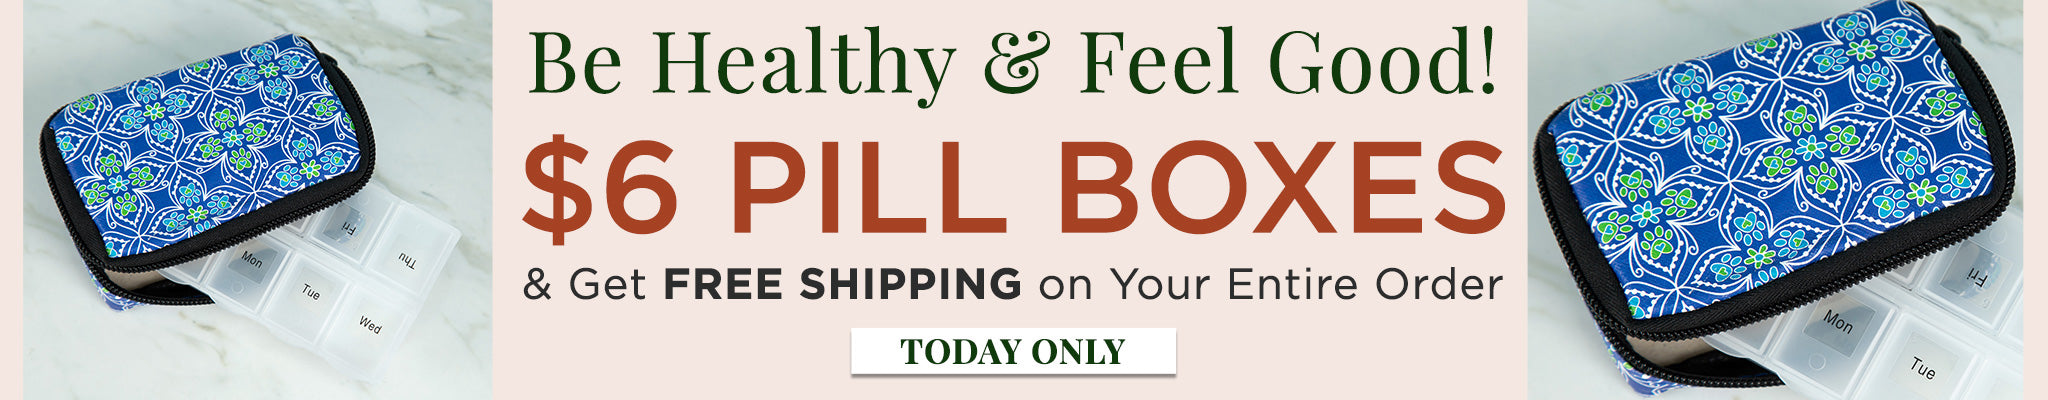 Be Healthy & Feel Good! $6 Pill Boxes & Get Free Shipping on Your Entire Order. Today Only!